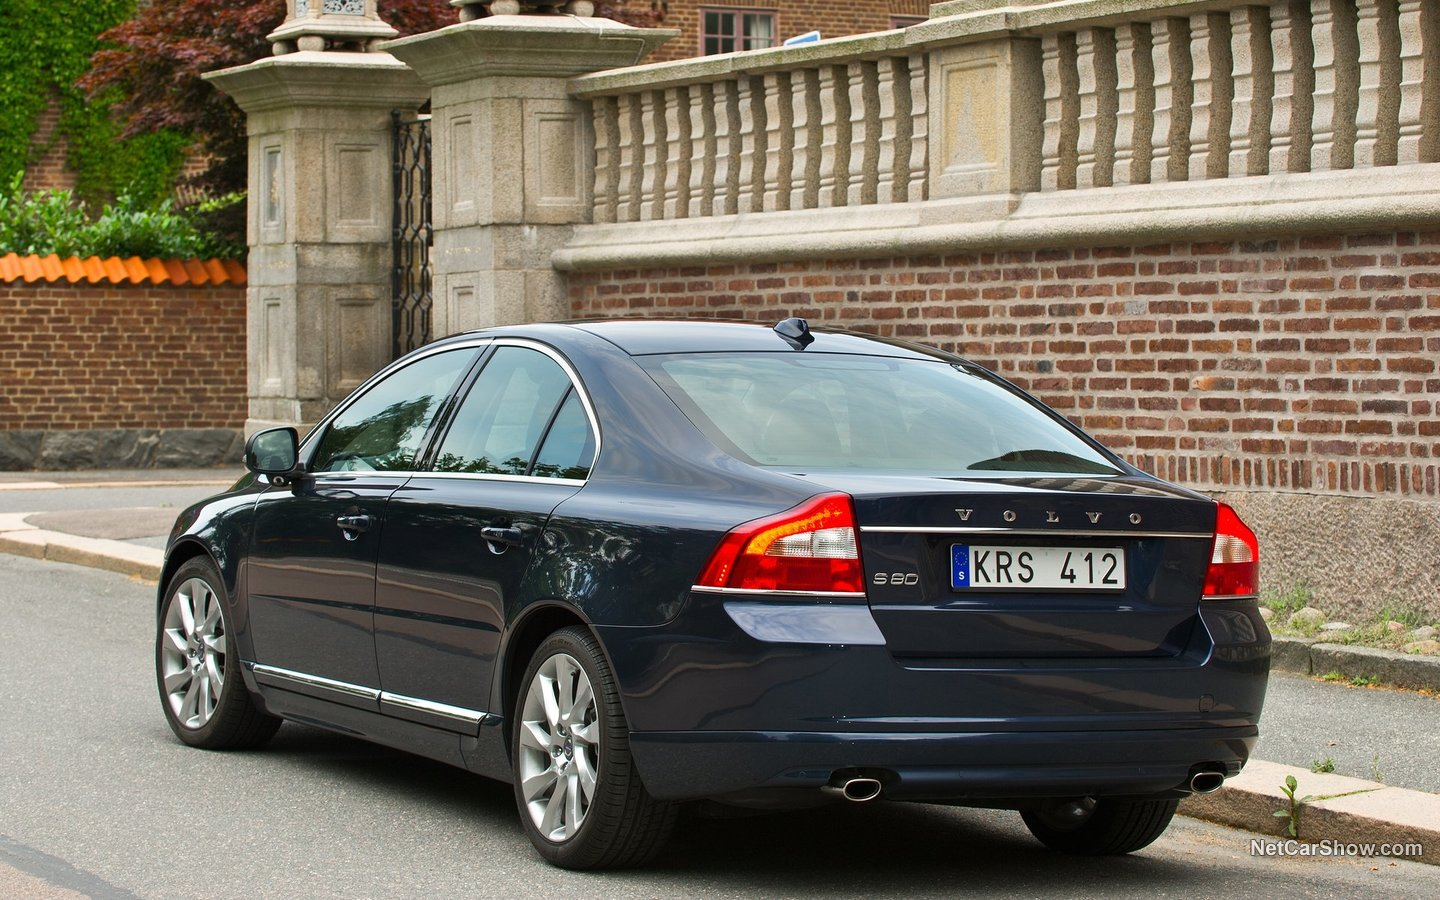 Volvo S80 2010 be07a1c2